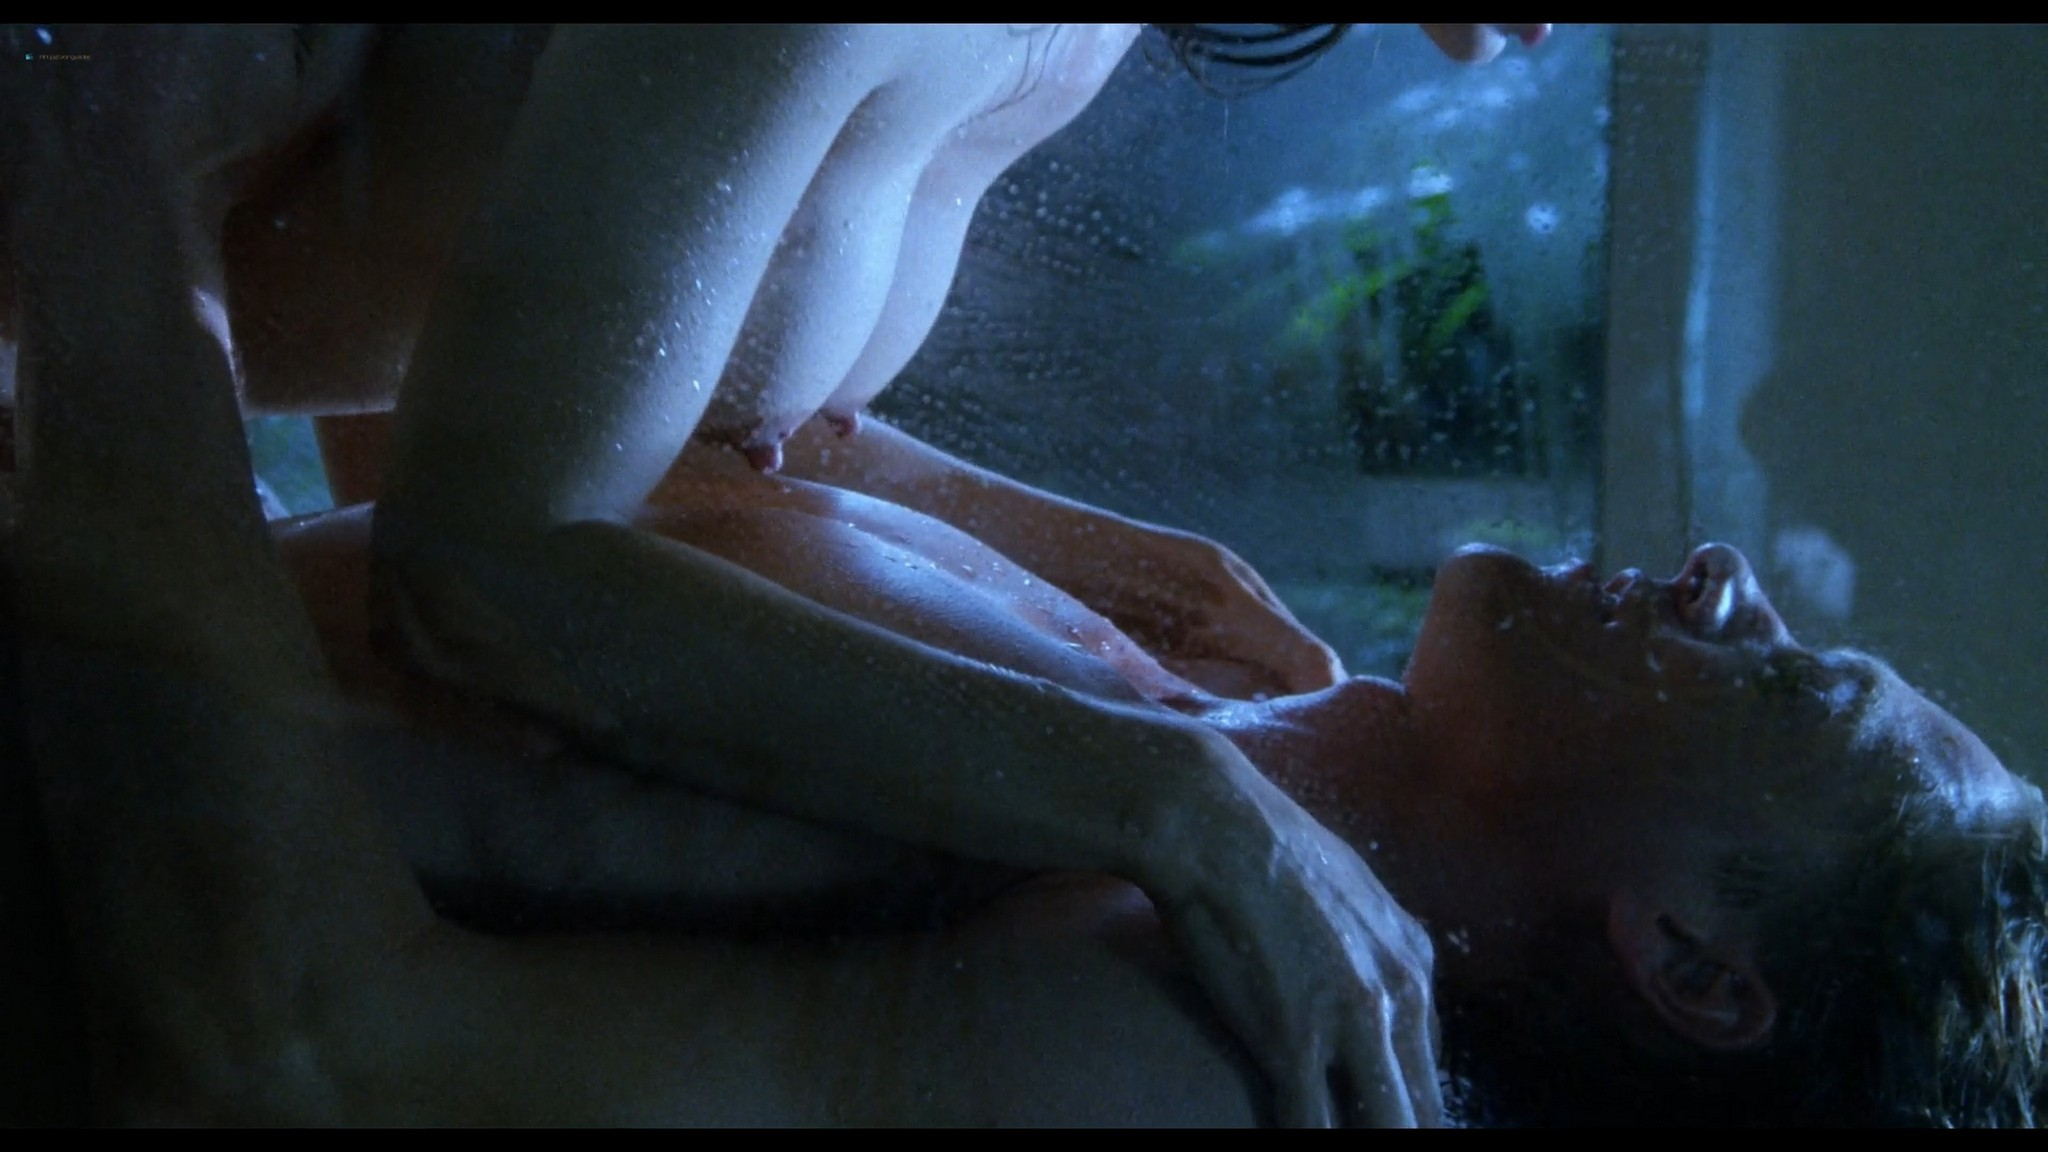 Shannon Tweed nude sex Adrienne Sachs nude sex in the shower In the Cold of the Night 1989 1080p BluRay 11